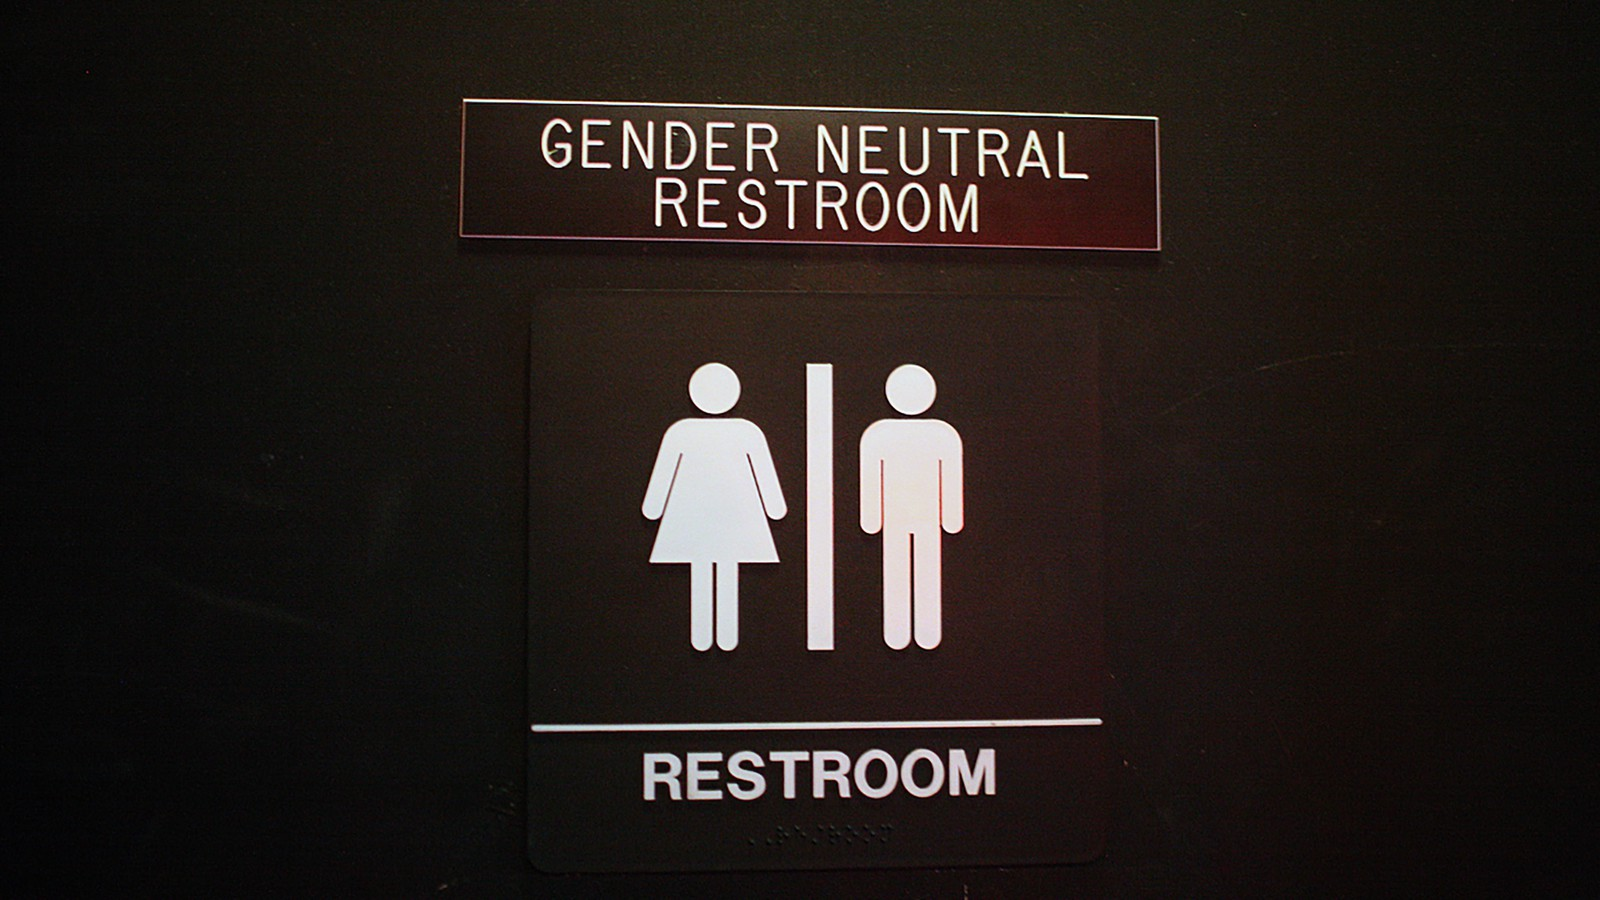 Bathrooms in Buildings will no Longer Have 'Male' or 'Female' Signage